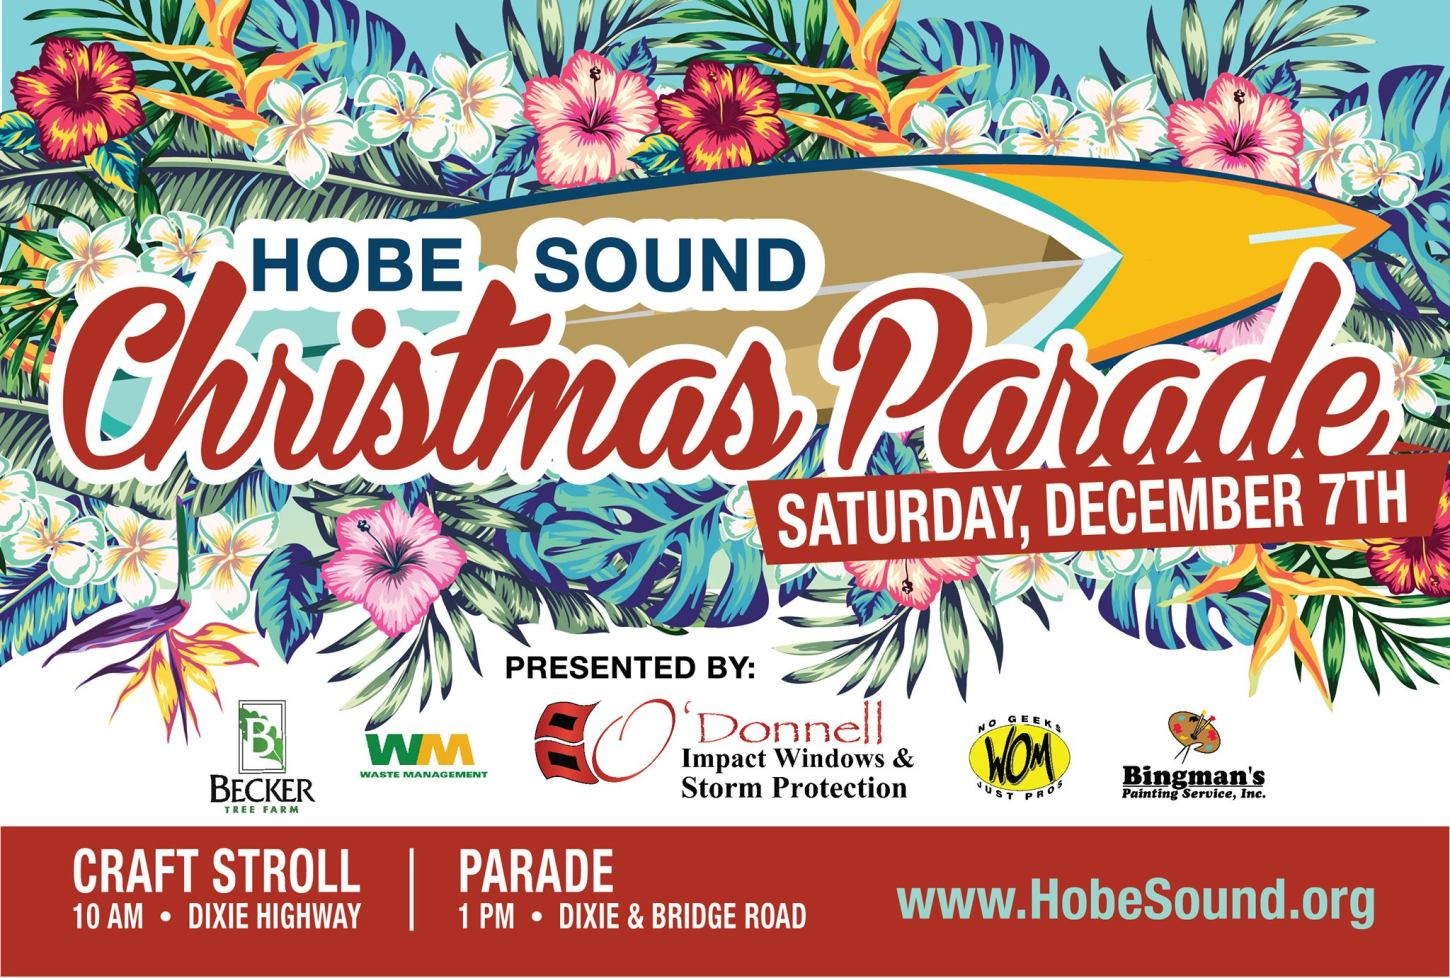 34th Annual Hobe Sound Christmas Parade